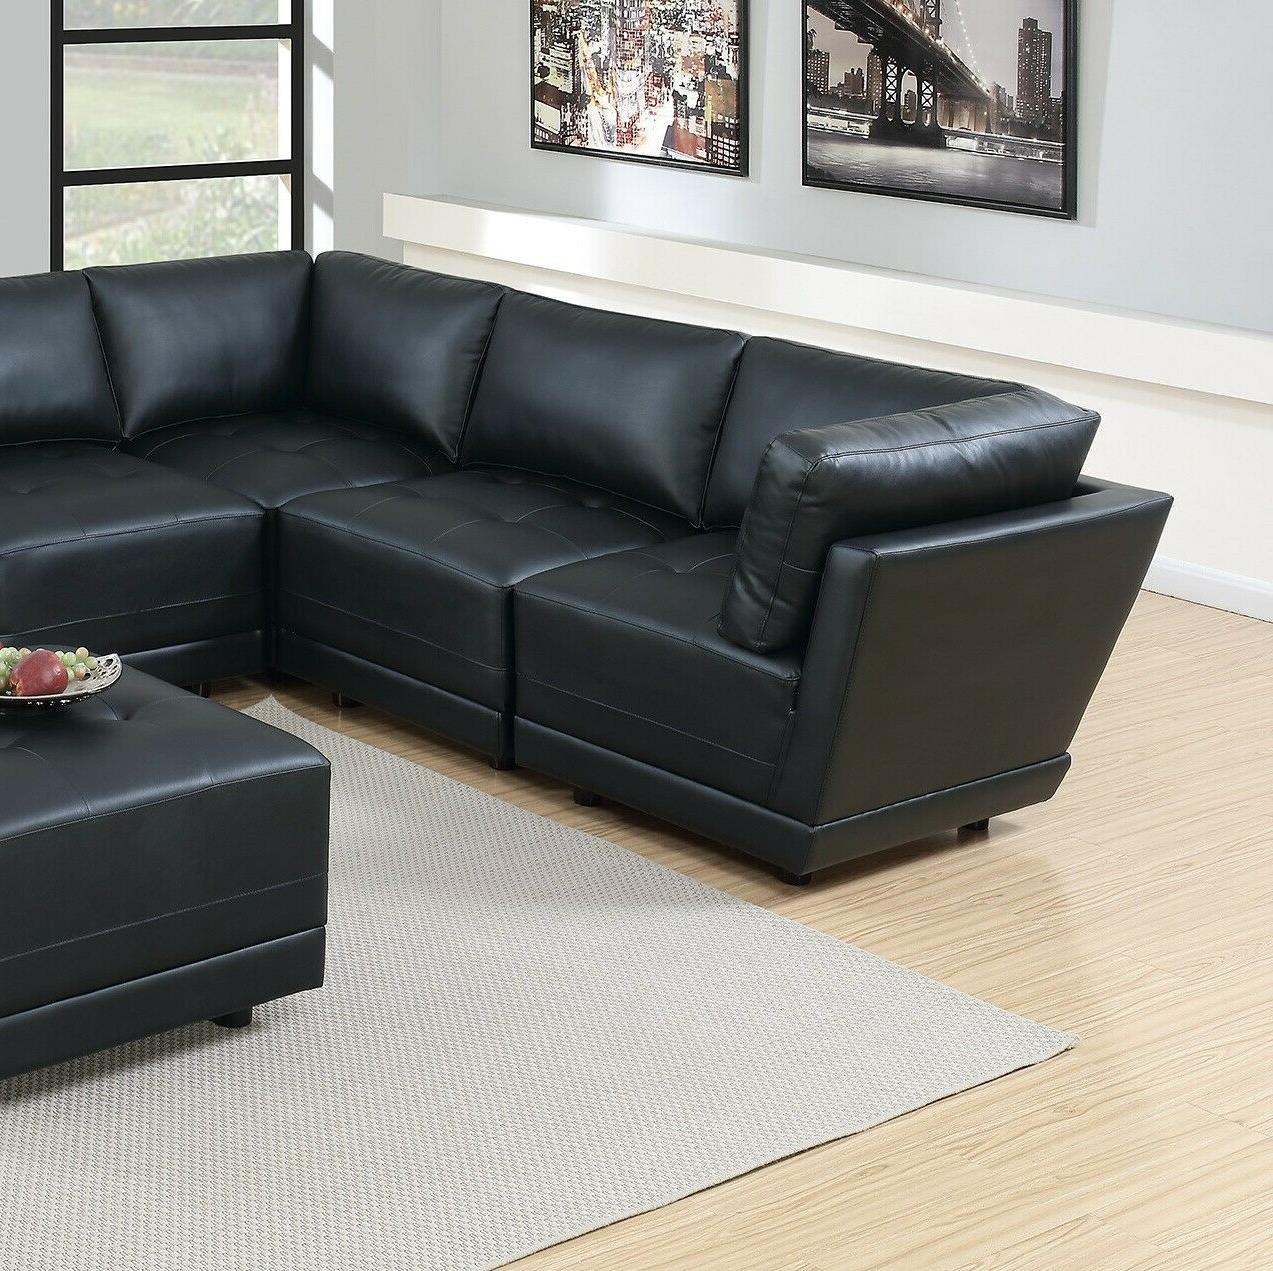 Unique Contemporary 3 Corner 3 and Sectional